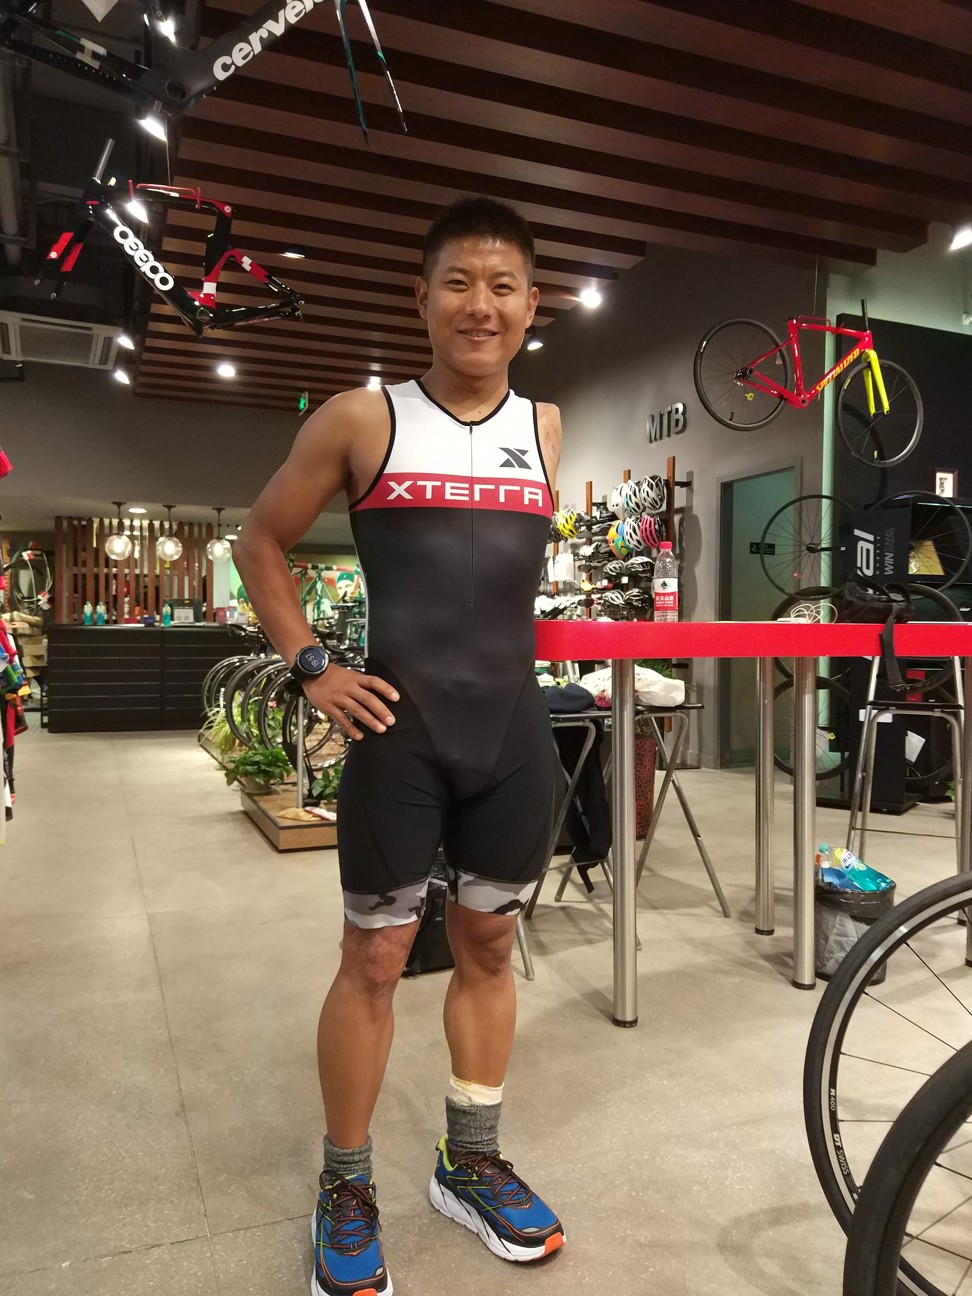 Wang Jiachao in Shanghai in 2017 during preparation for the Maui Hawaii for Xtrerra race.